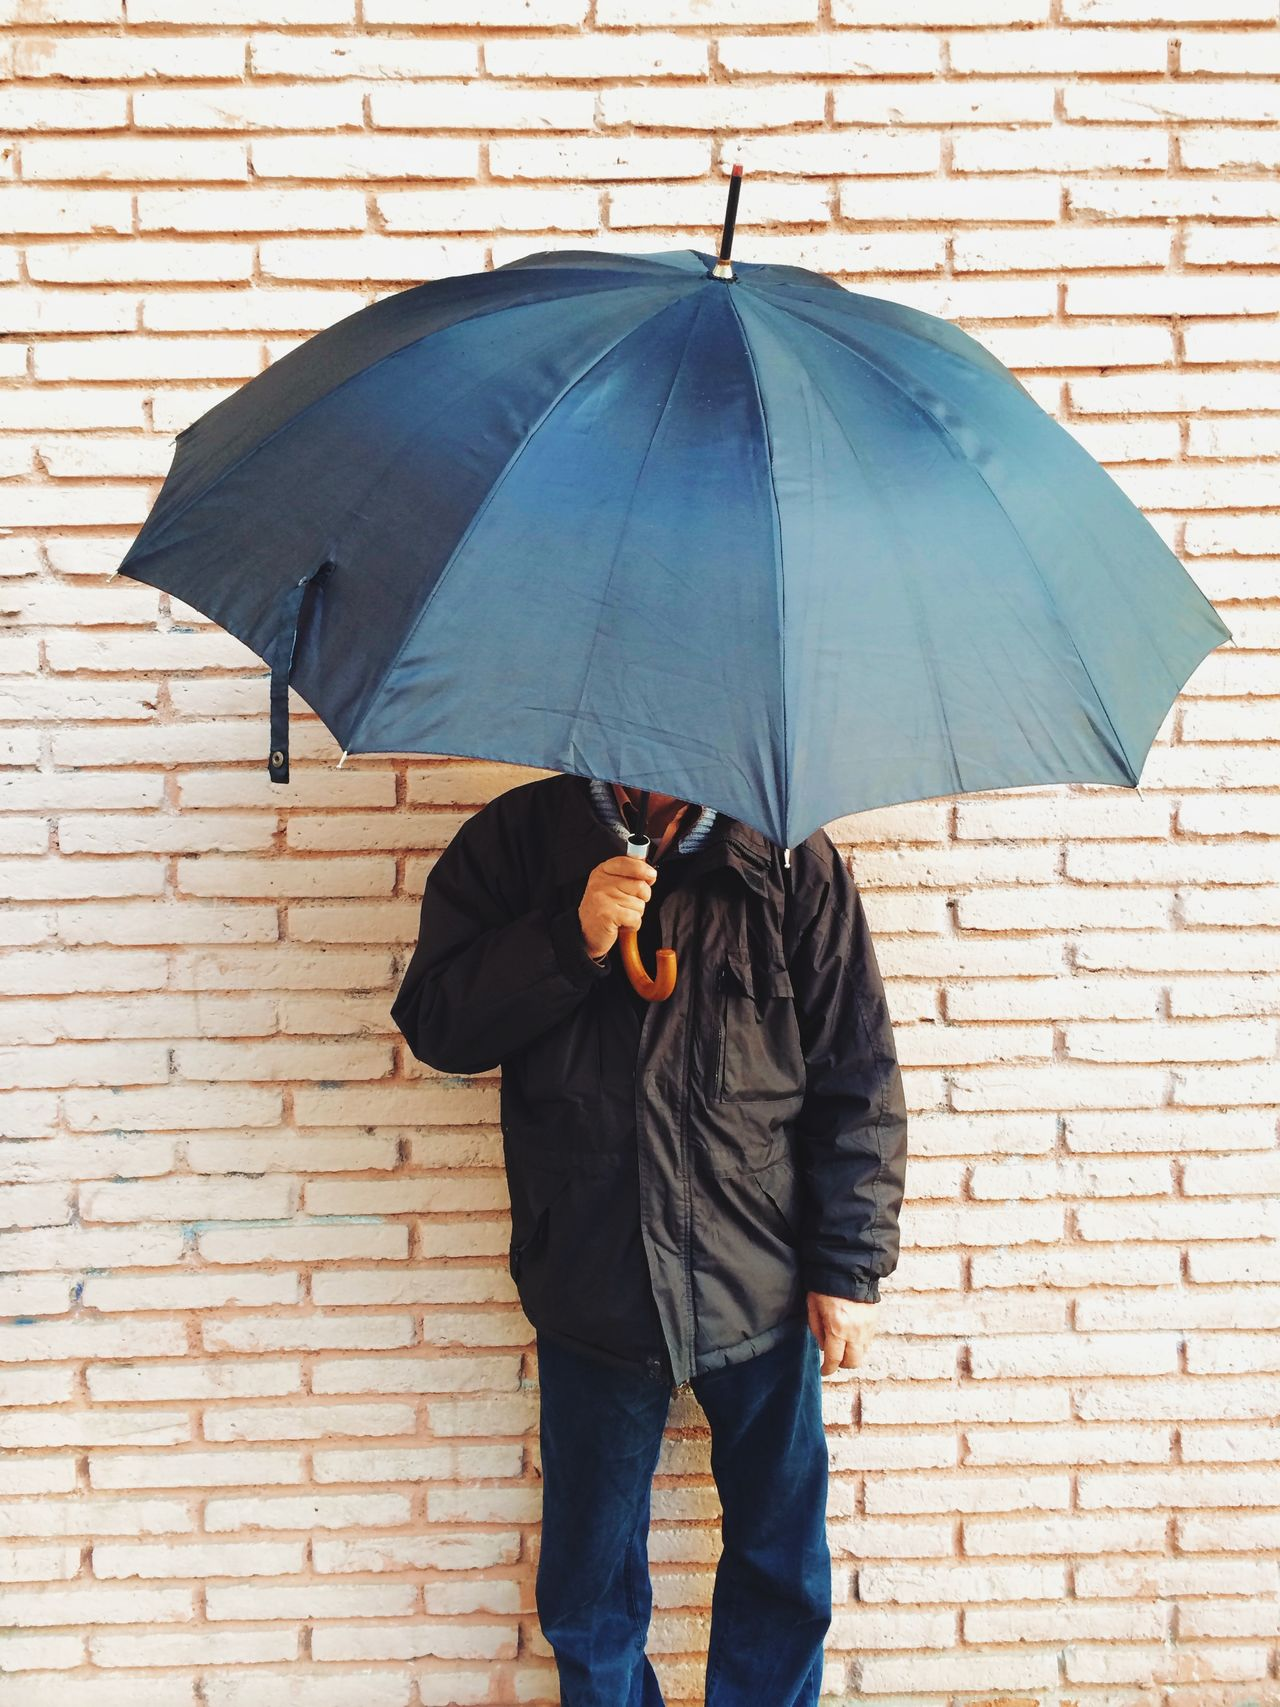 Beautiful stock photos of umbrella, Brick Wall, Day, Front View, Holding